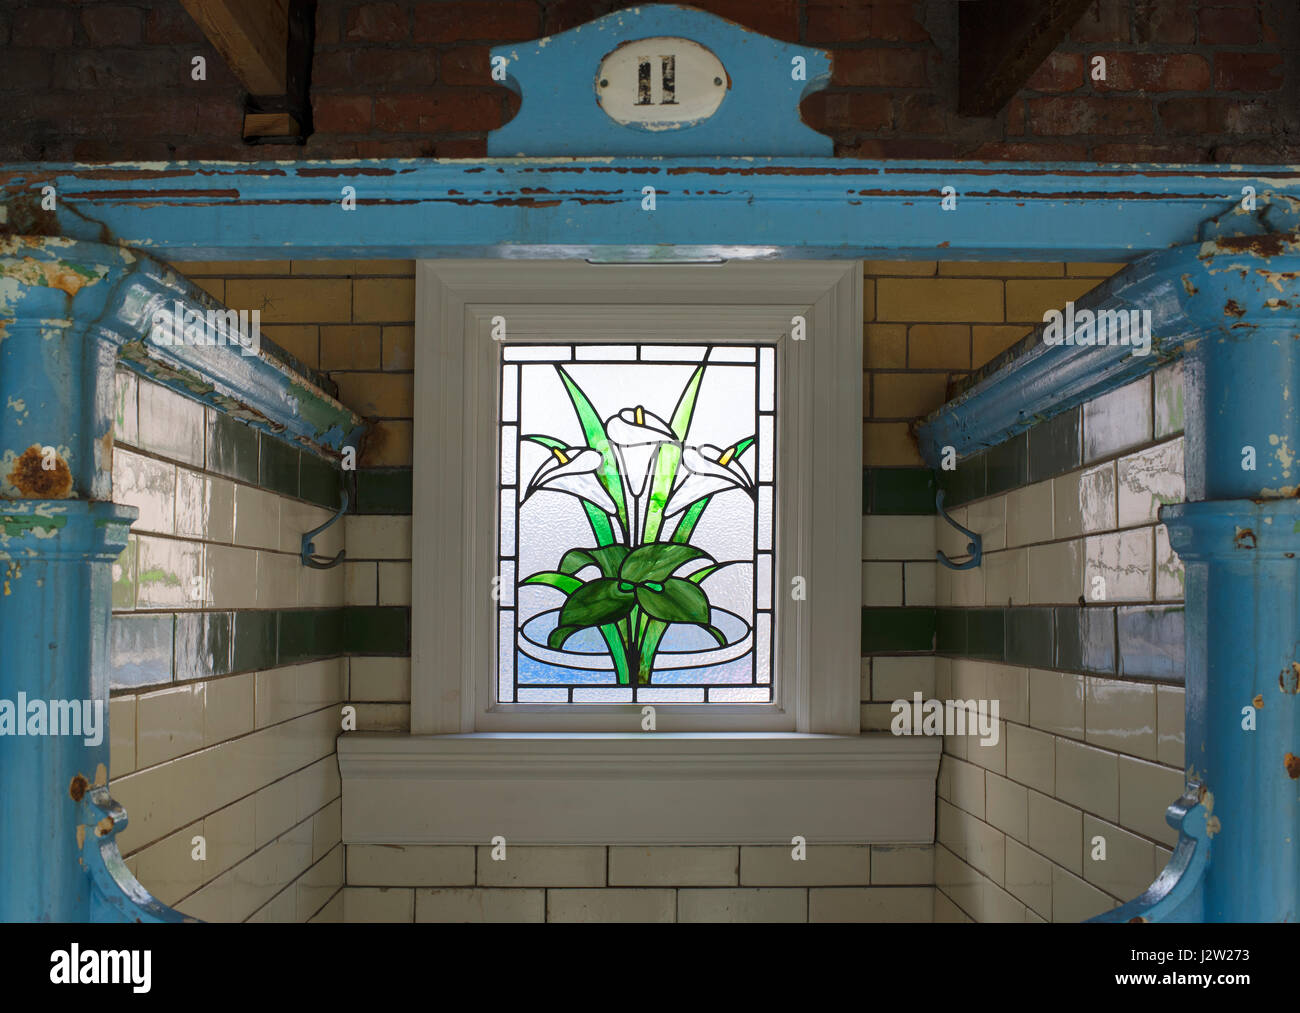 A modern stained glass window in an Edwardian changing cubicle, Victoria Baths, Manchester, England - Stock Image